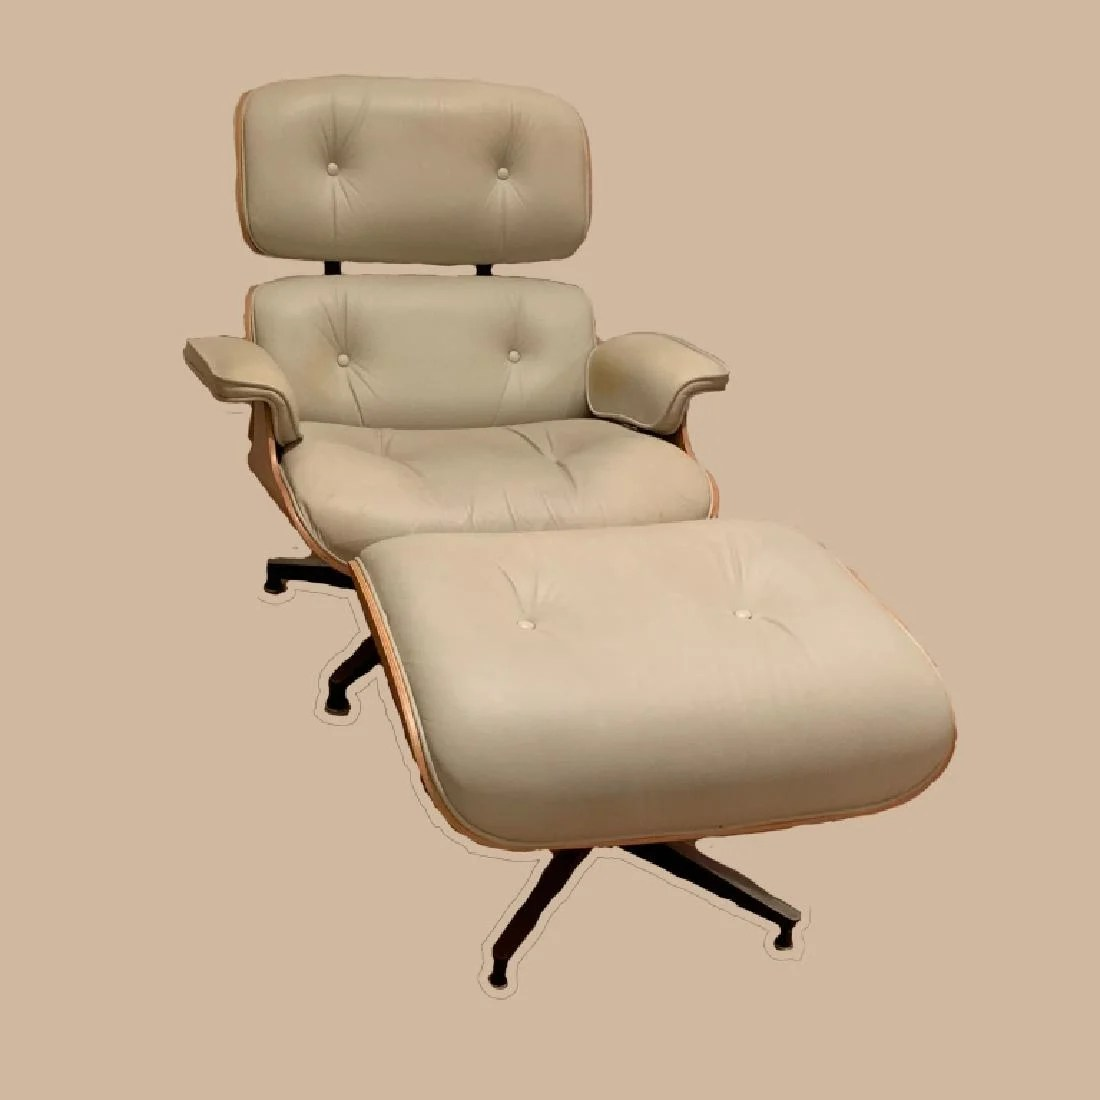 Eames Chair Beige Mid Mod Eames Chair Wood Frame Recline W Ottoman